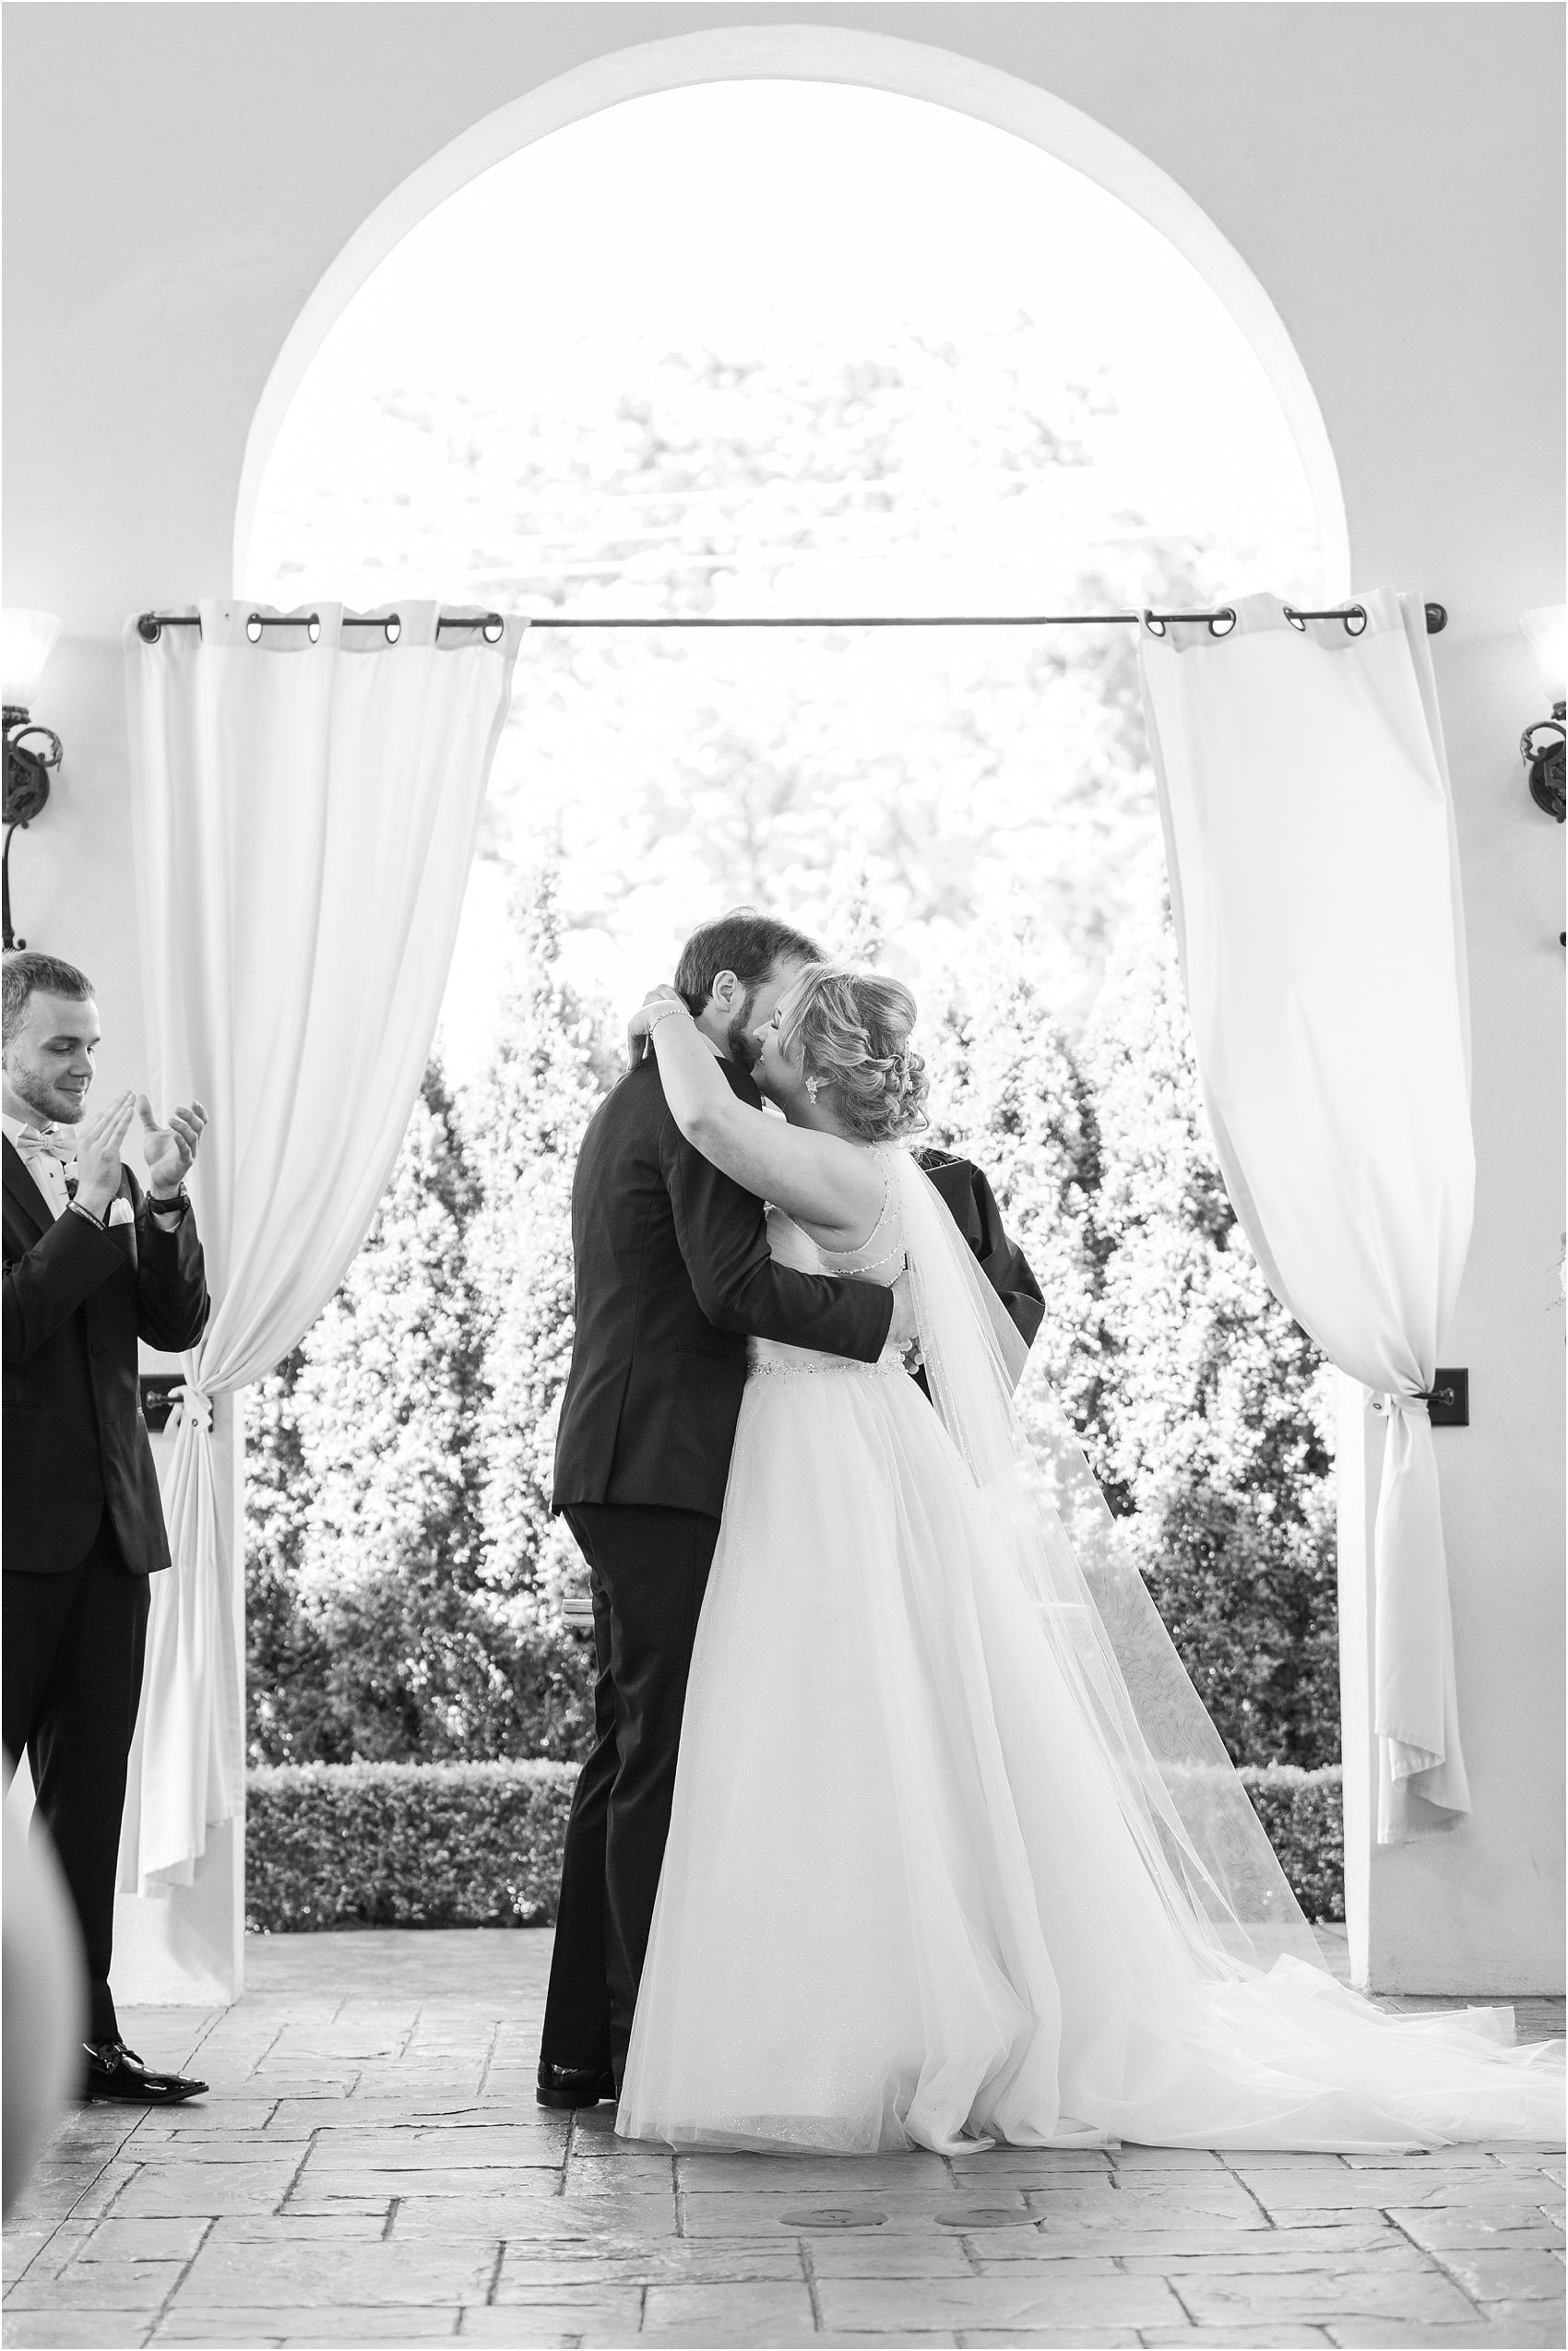 lord-of-the-rings-inspired-wedding-photos-at-crystal-gardens-in-howell-mi-by-courtney-carolyn-photography_0049.jpg